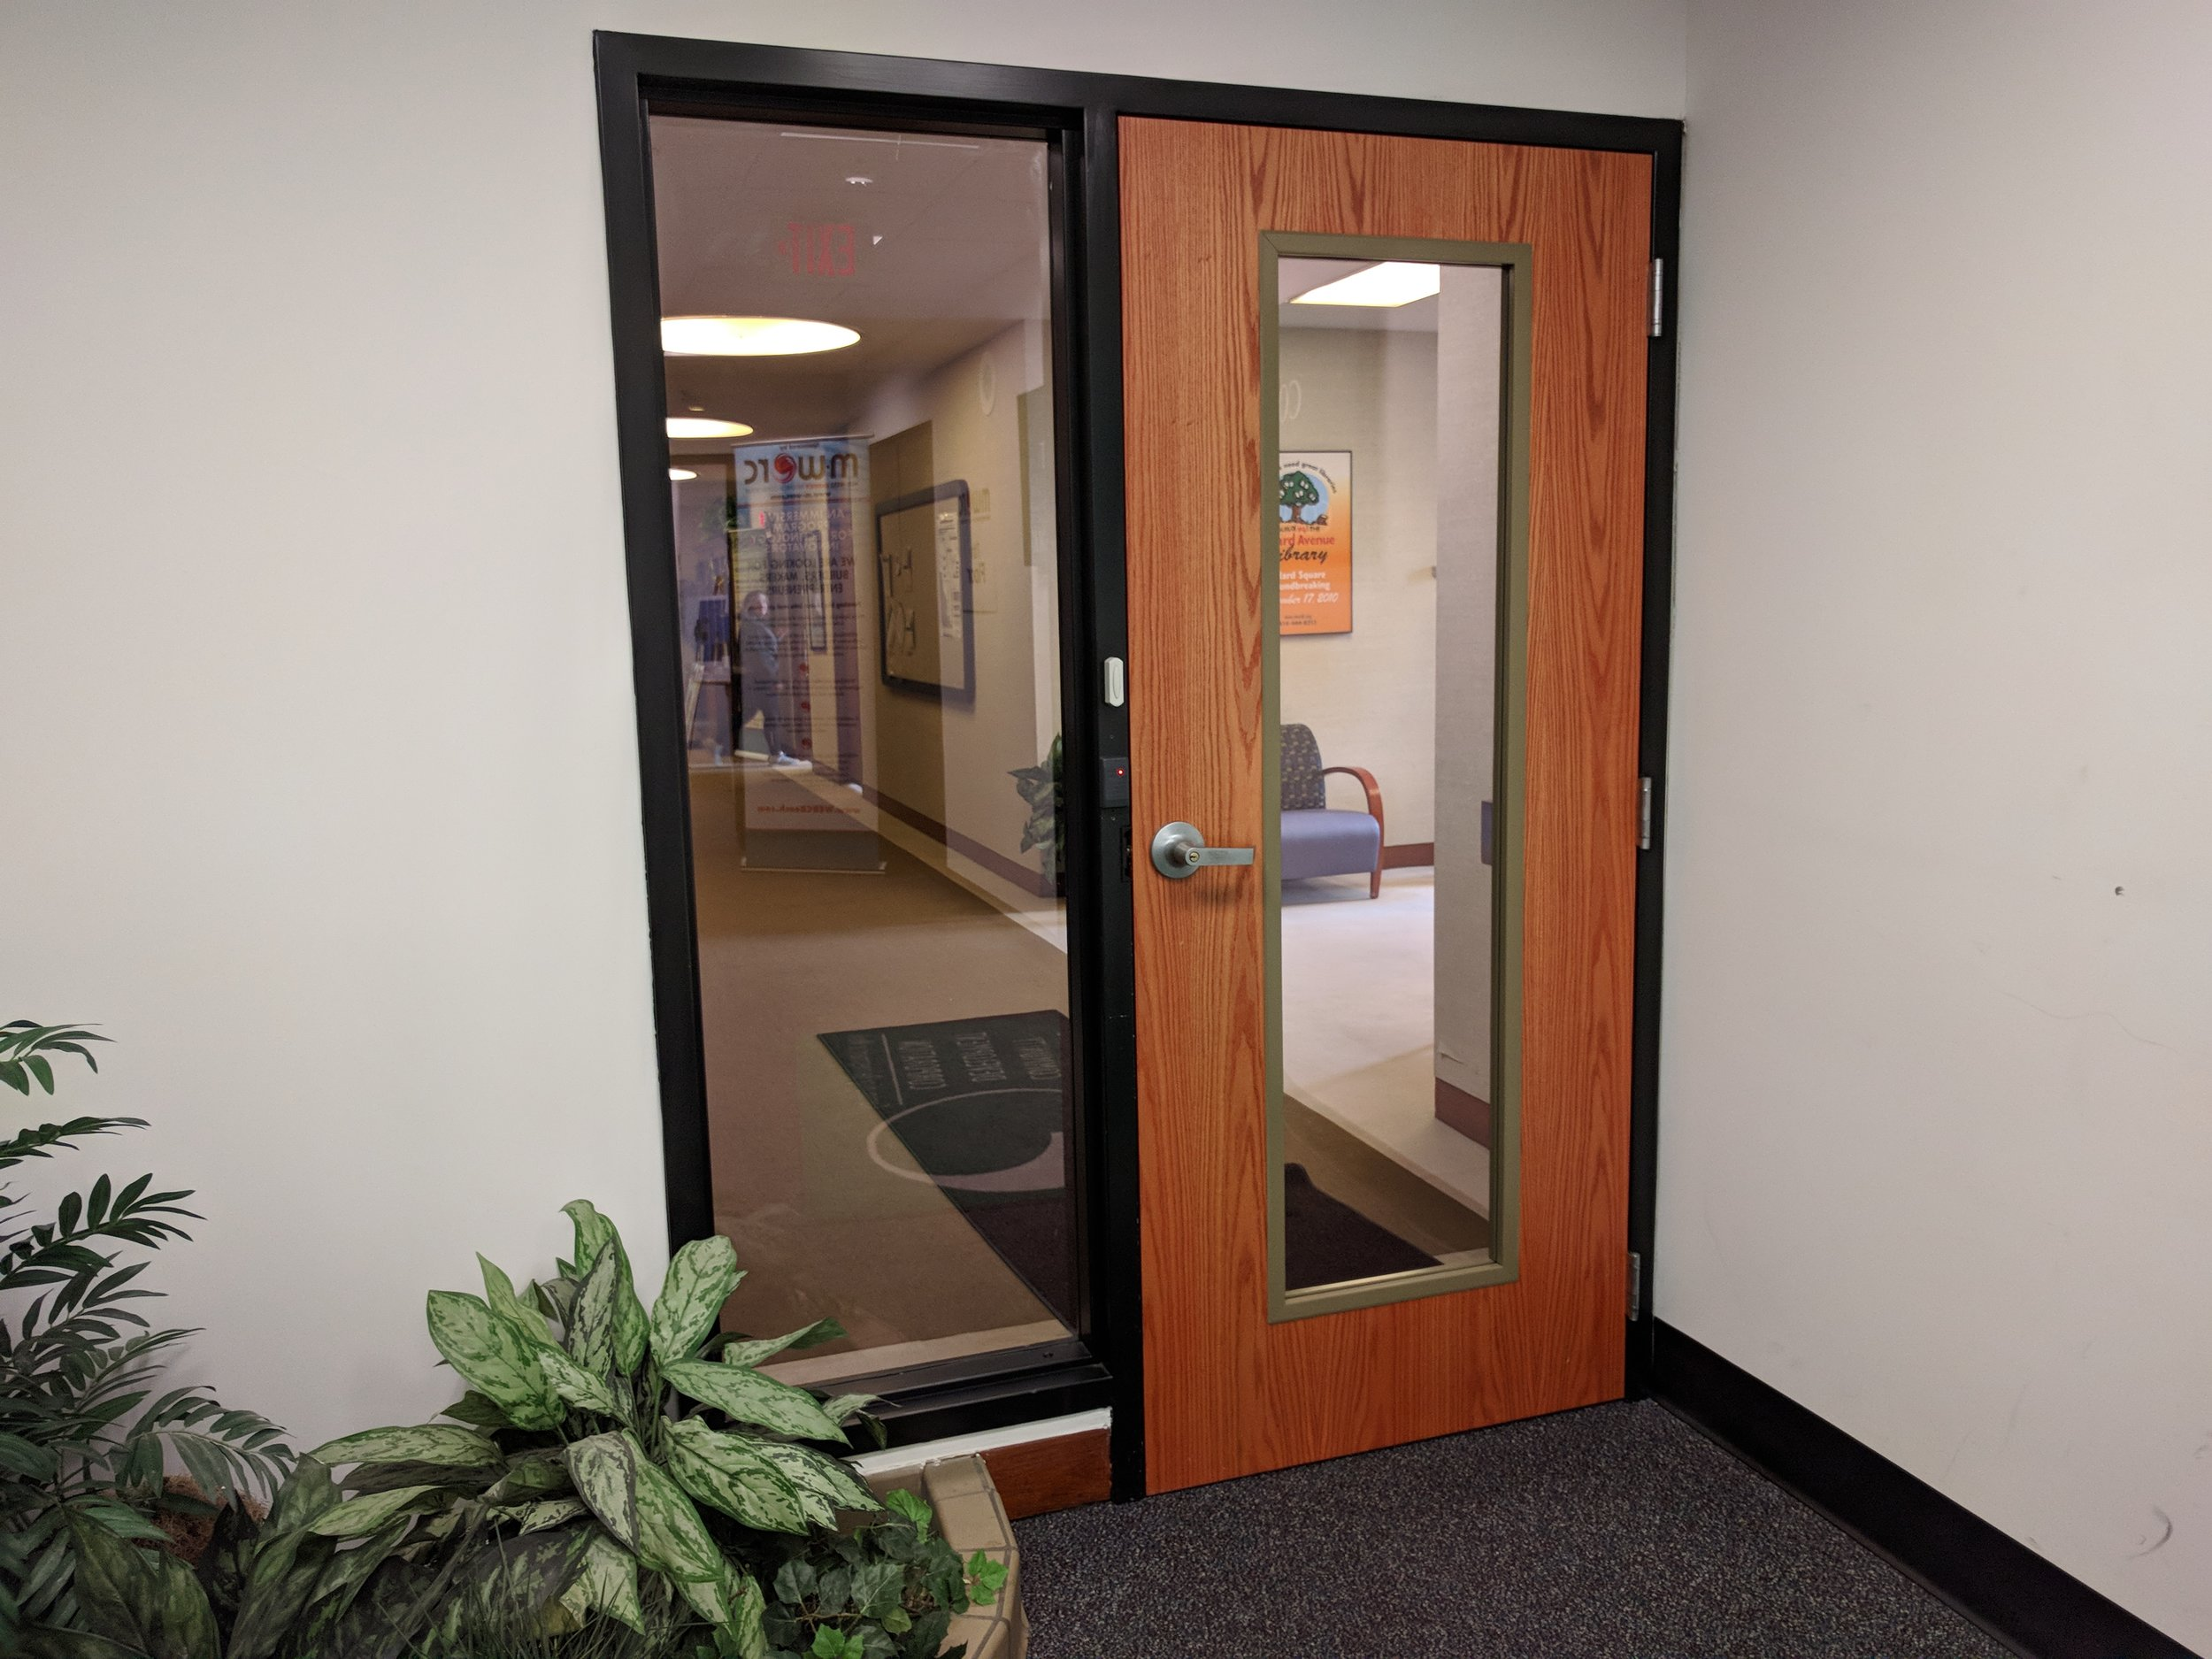 Office Entry during Office Hours